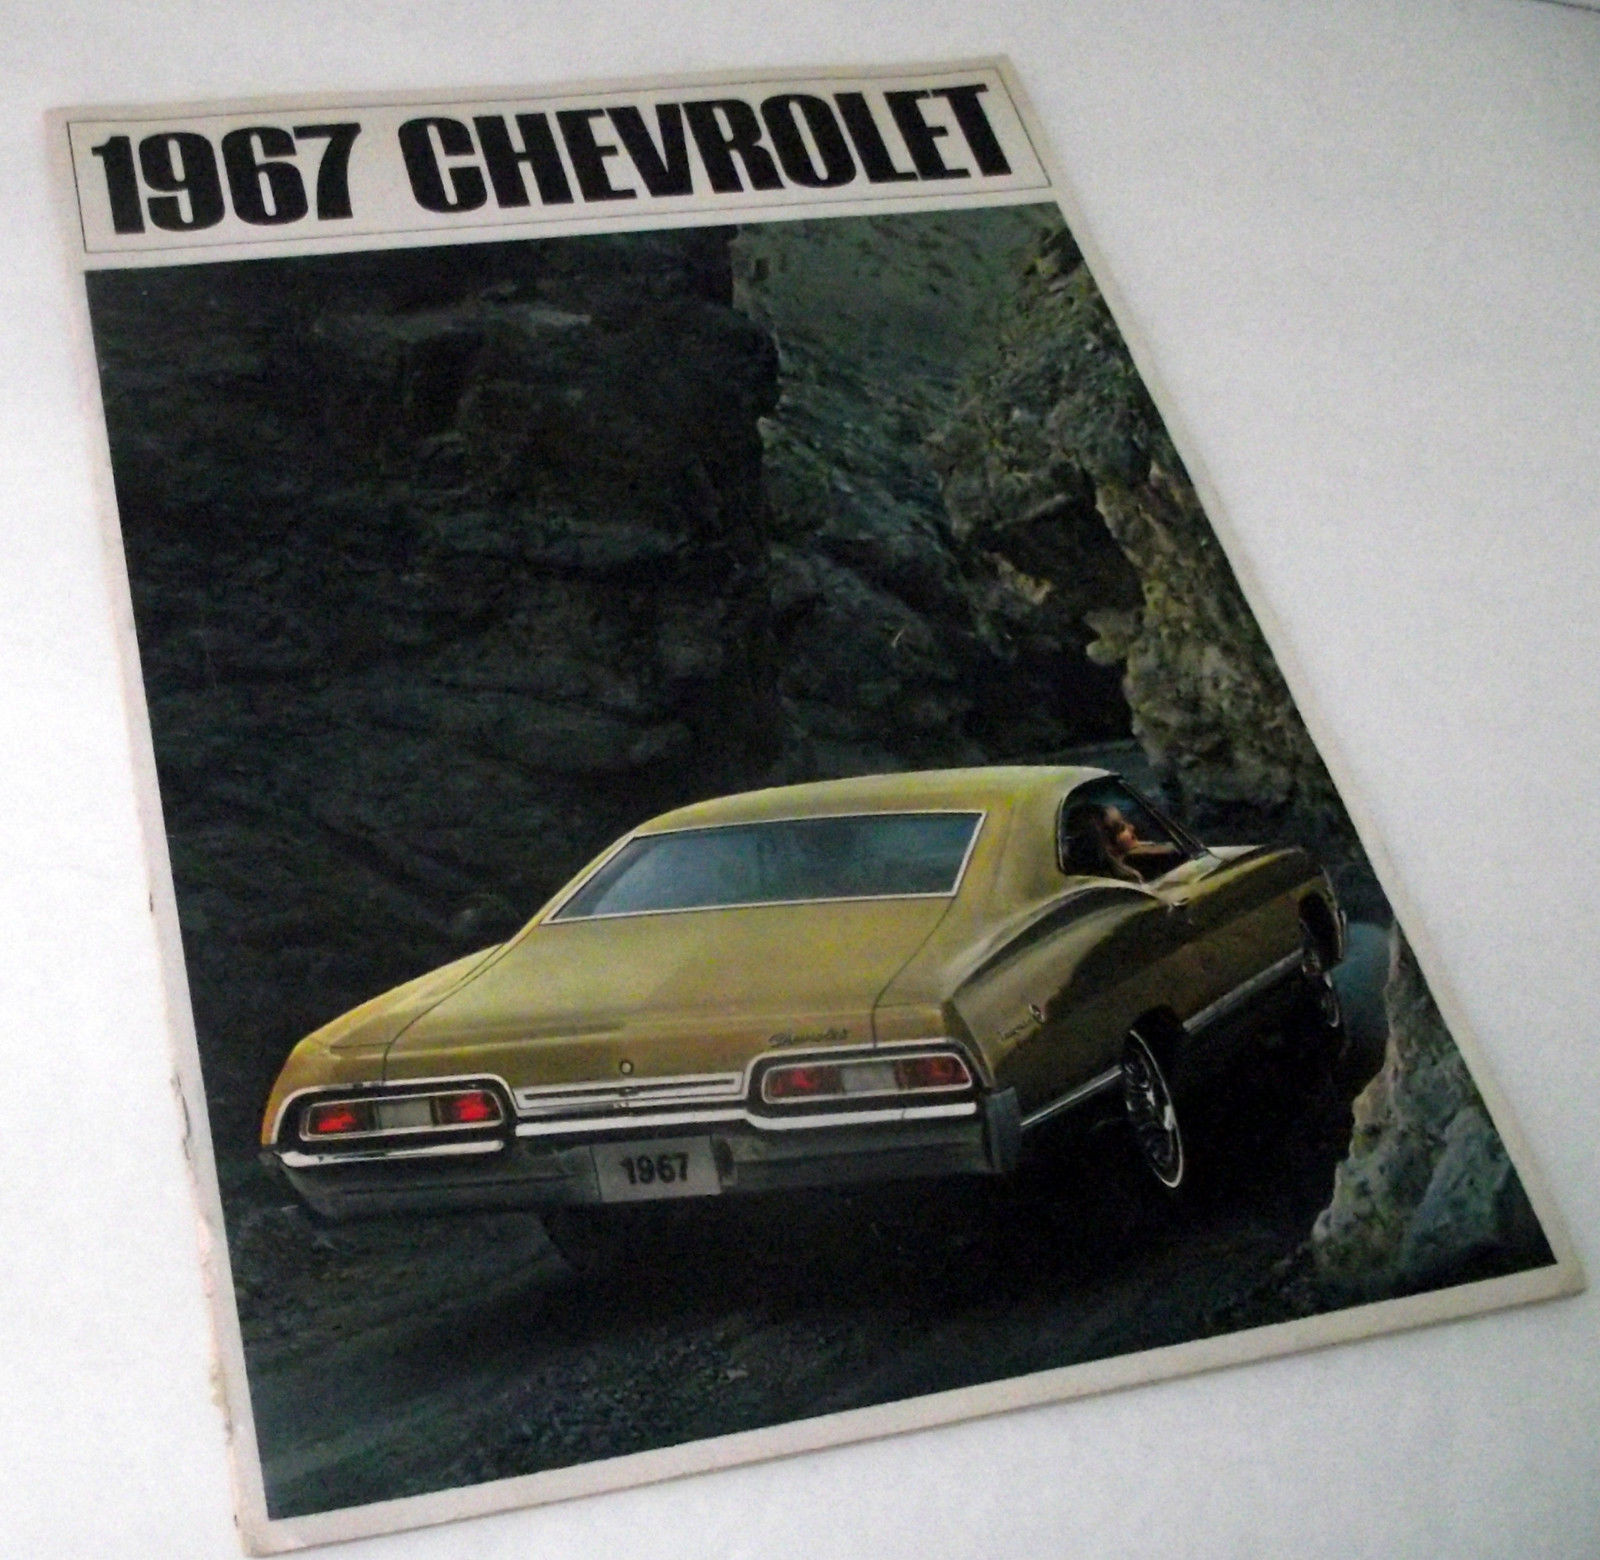 Primary image for 1967 Chevrolet Chevy Sales Dealership Caprice Impala Bel Air Brochure Vintage